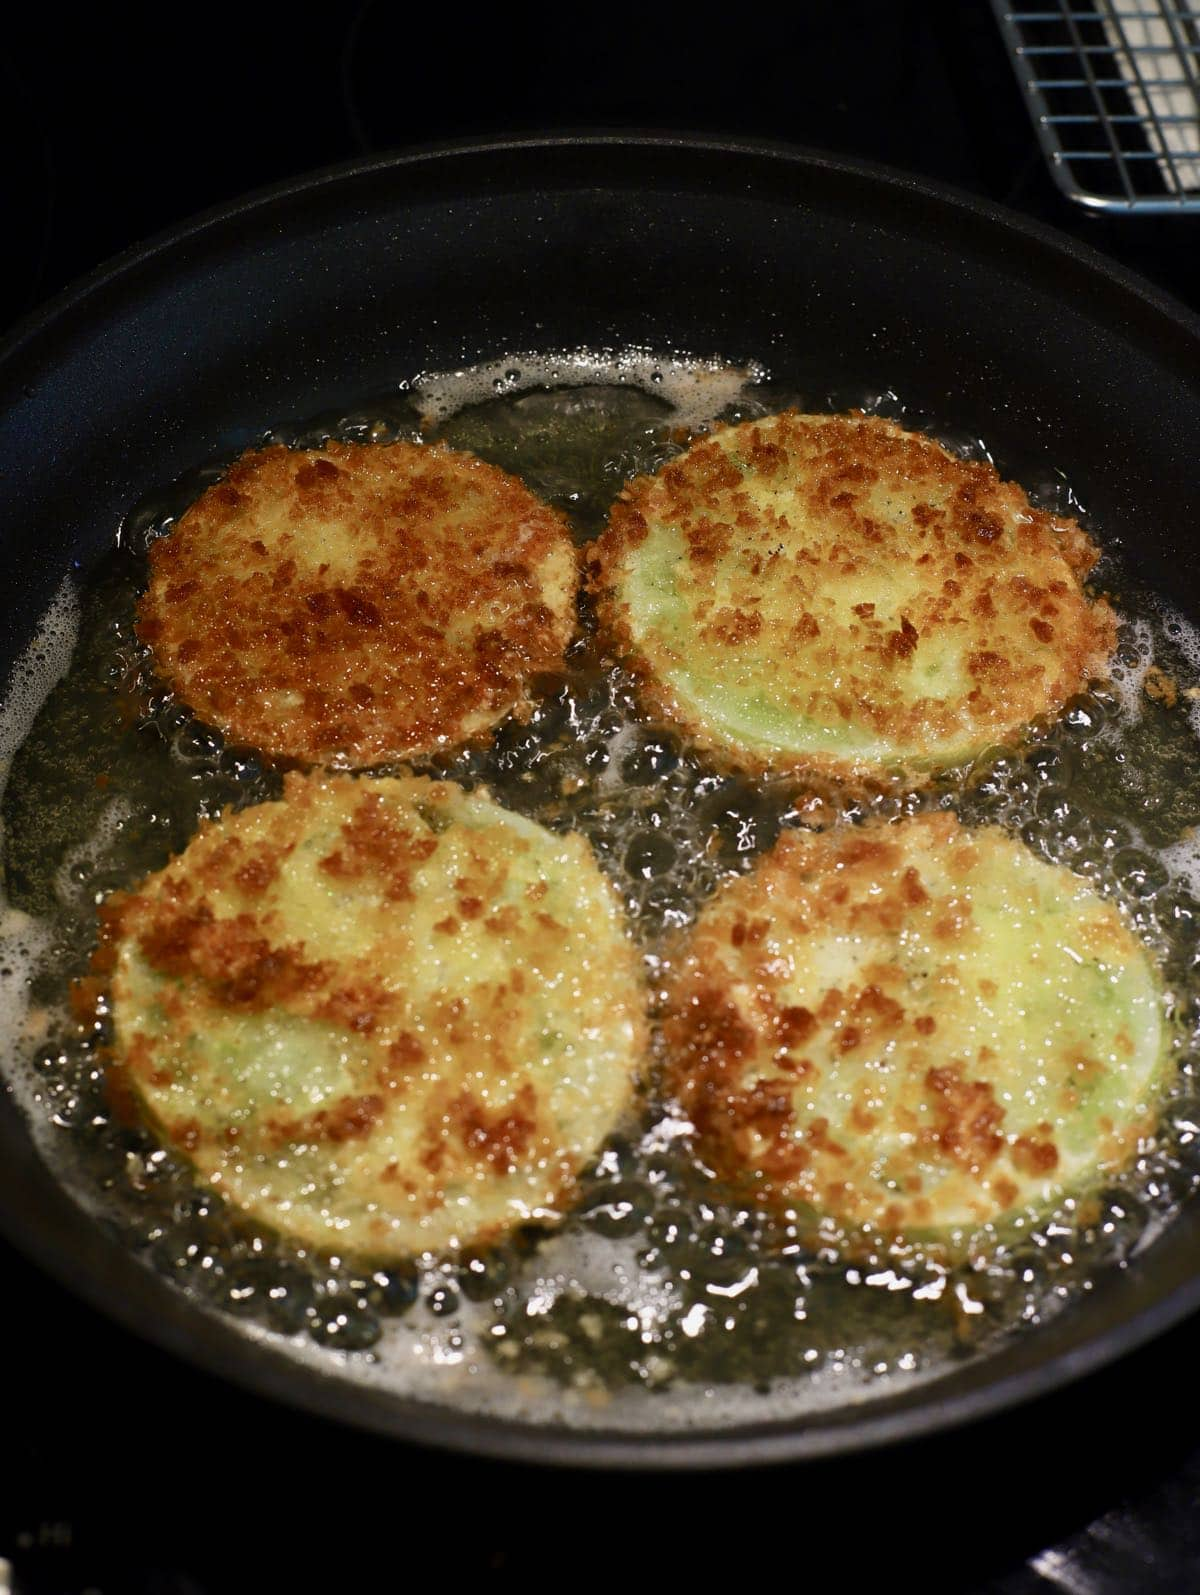 Four tomato slices frying in a large skillet.